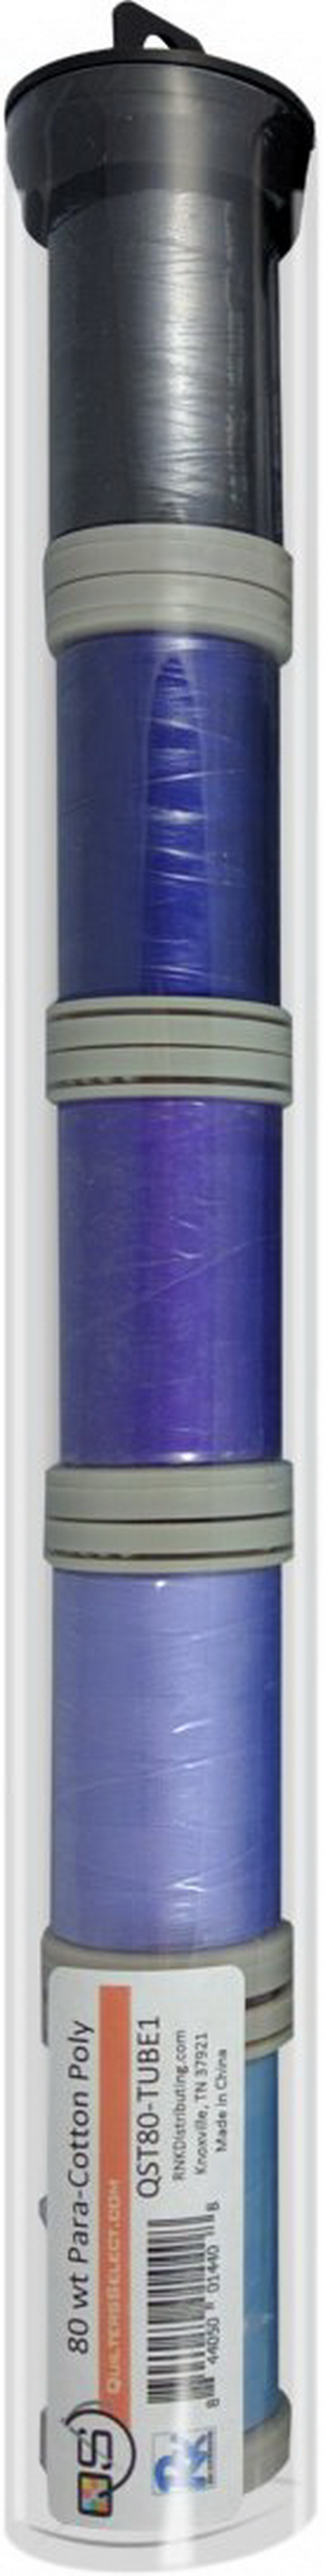 Quilters Select Para-Cotton Polyester Thread 80 Weight Tube Bundle 1